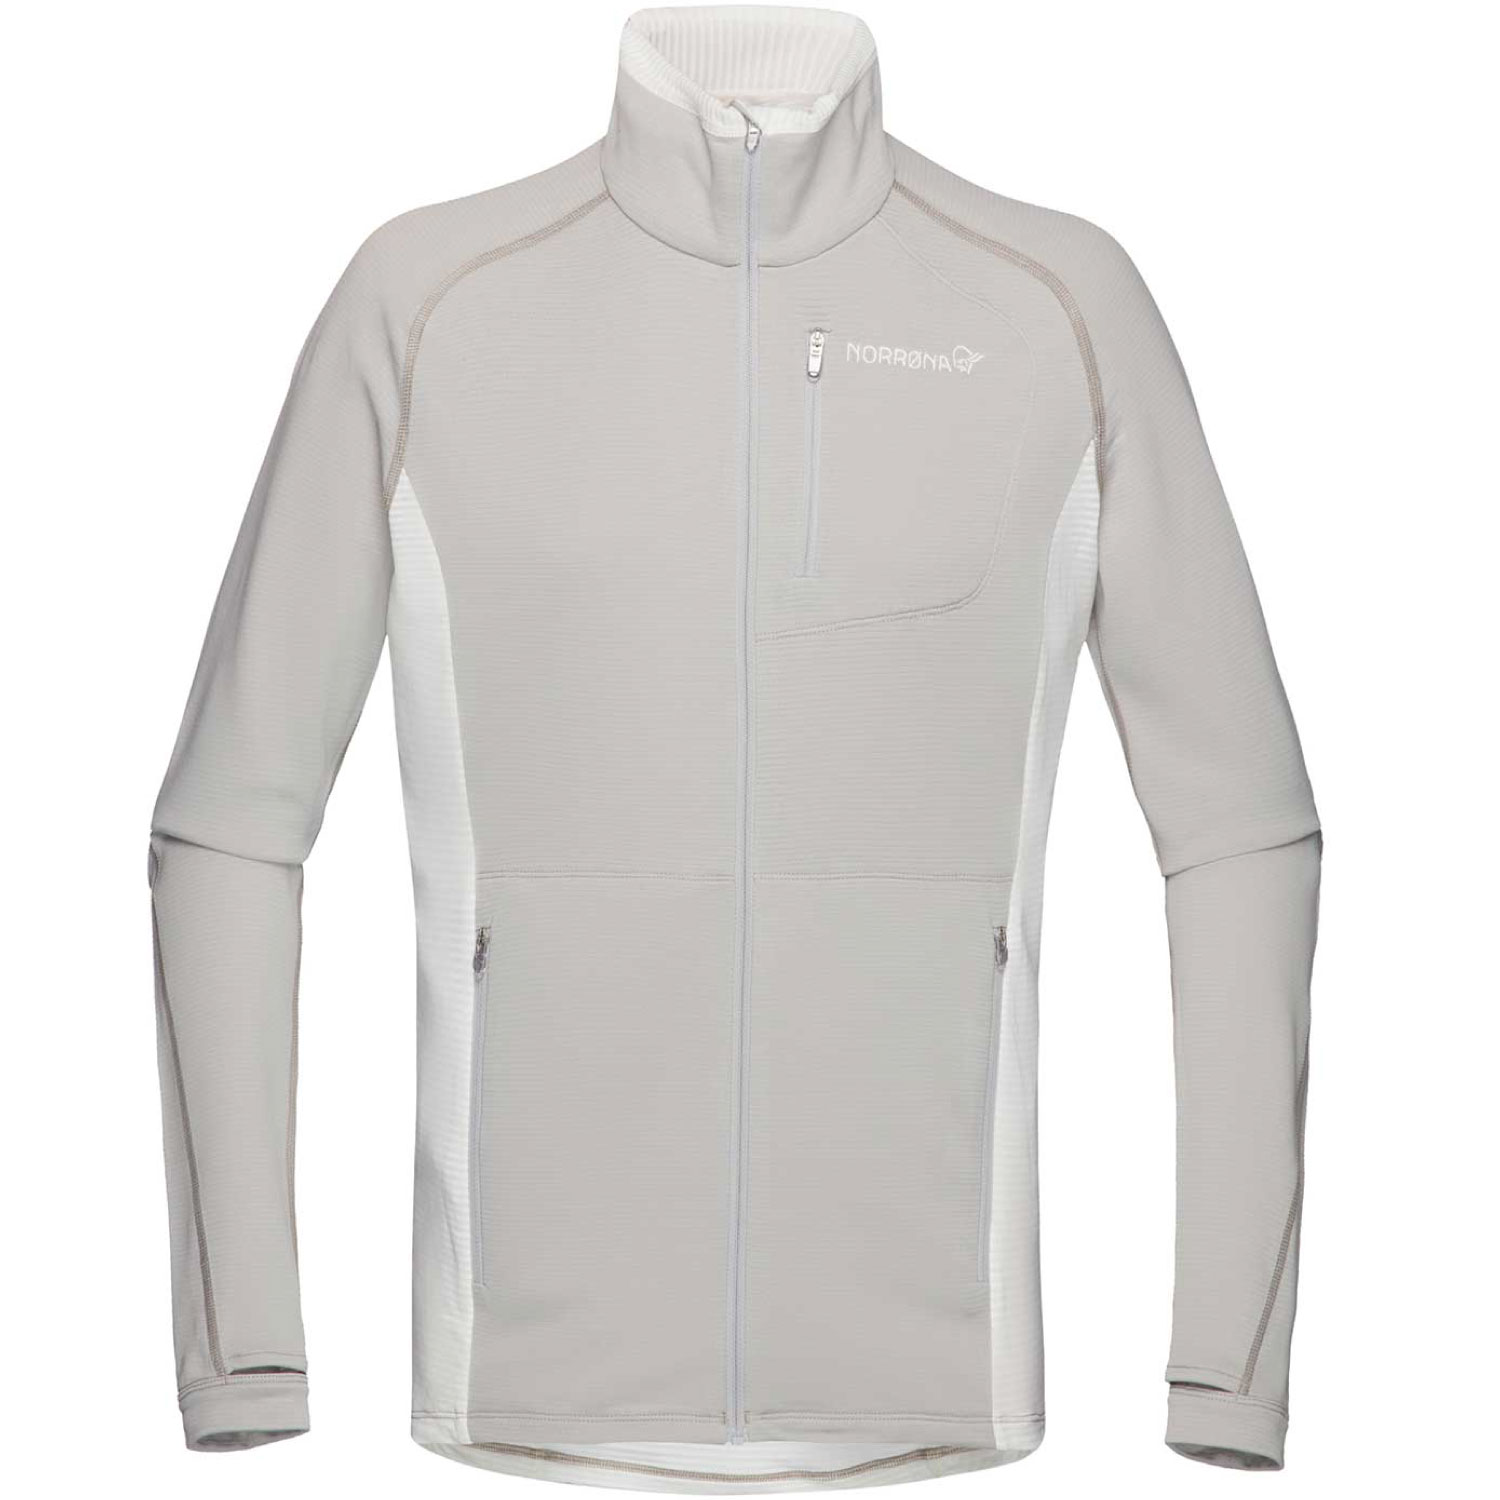 bitihorn warm1 stretch Jacket (W)